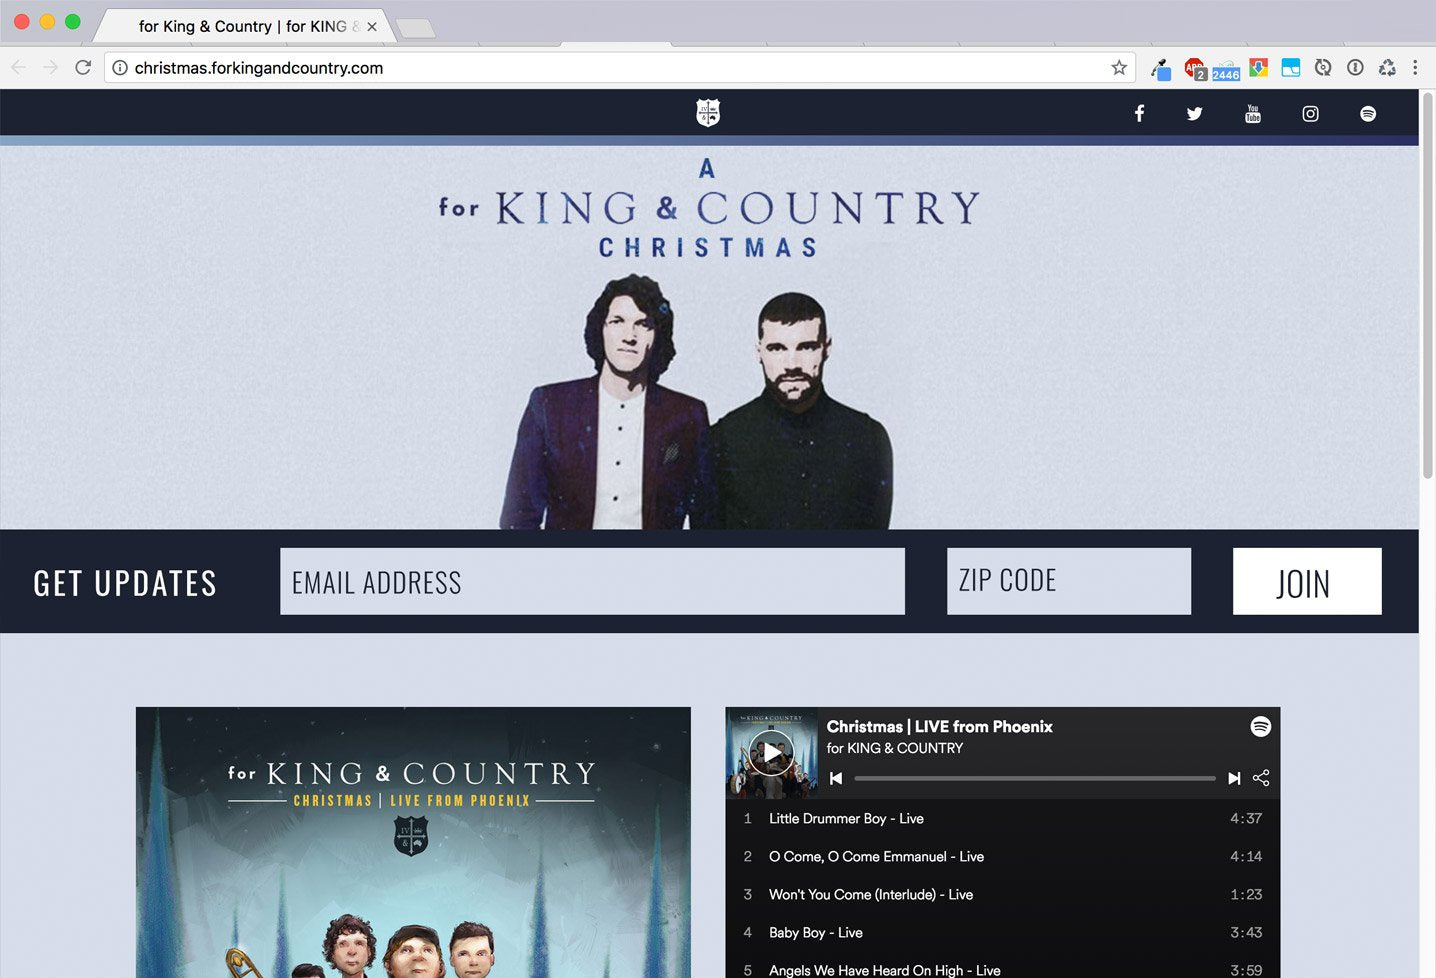 for KING & COUNTRY Christmas Album/Tour Launch